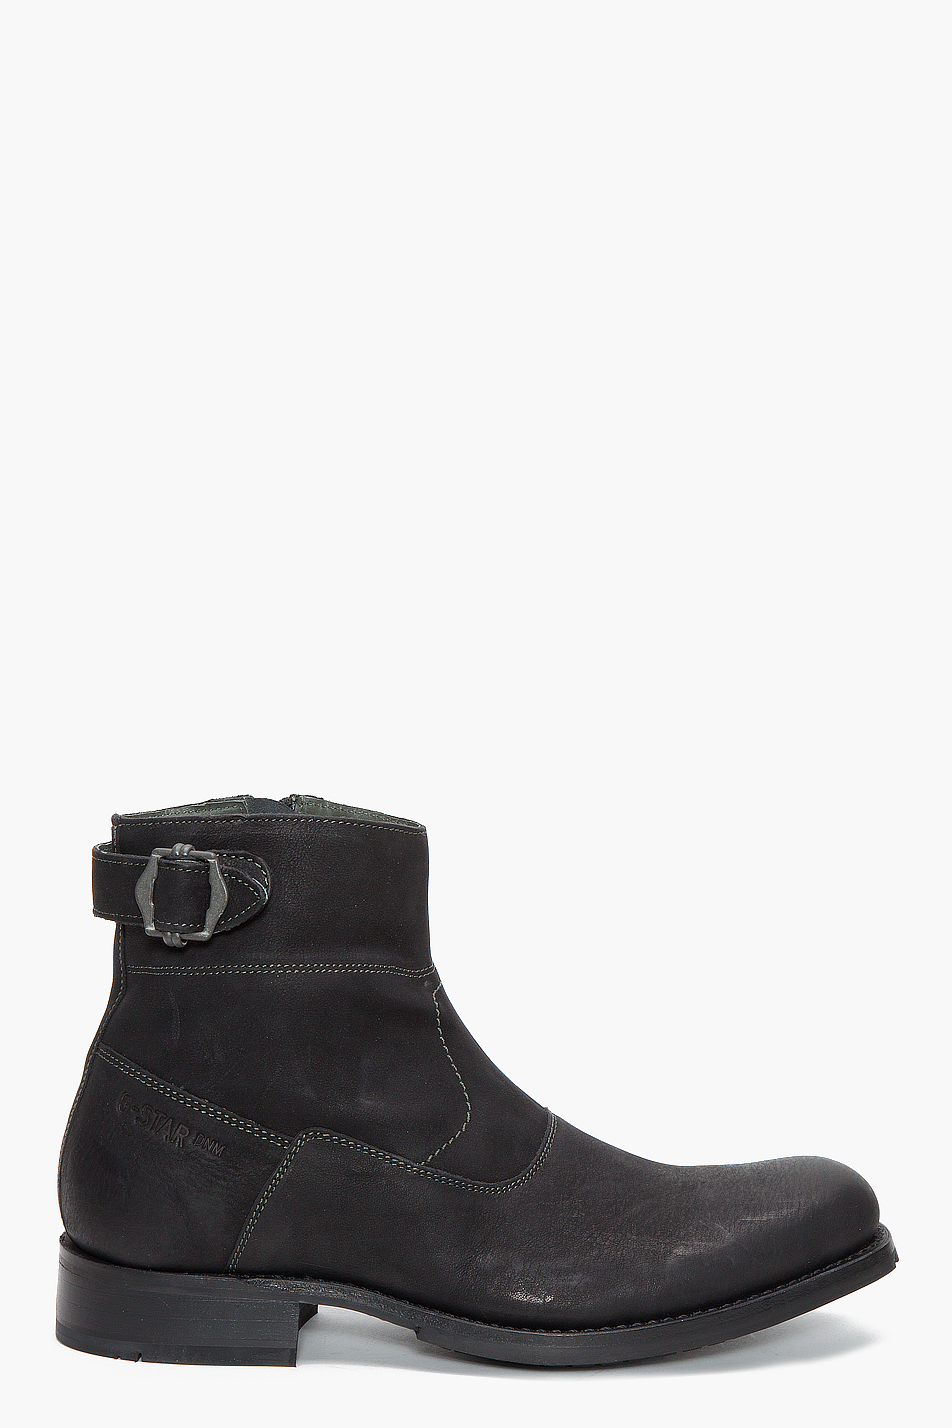 g star raw m i mission ii nabuk boots in black for men lyst. Black Bedroom Furniture Sets. Home Design Ideas